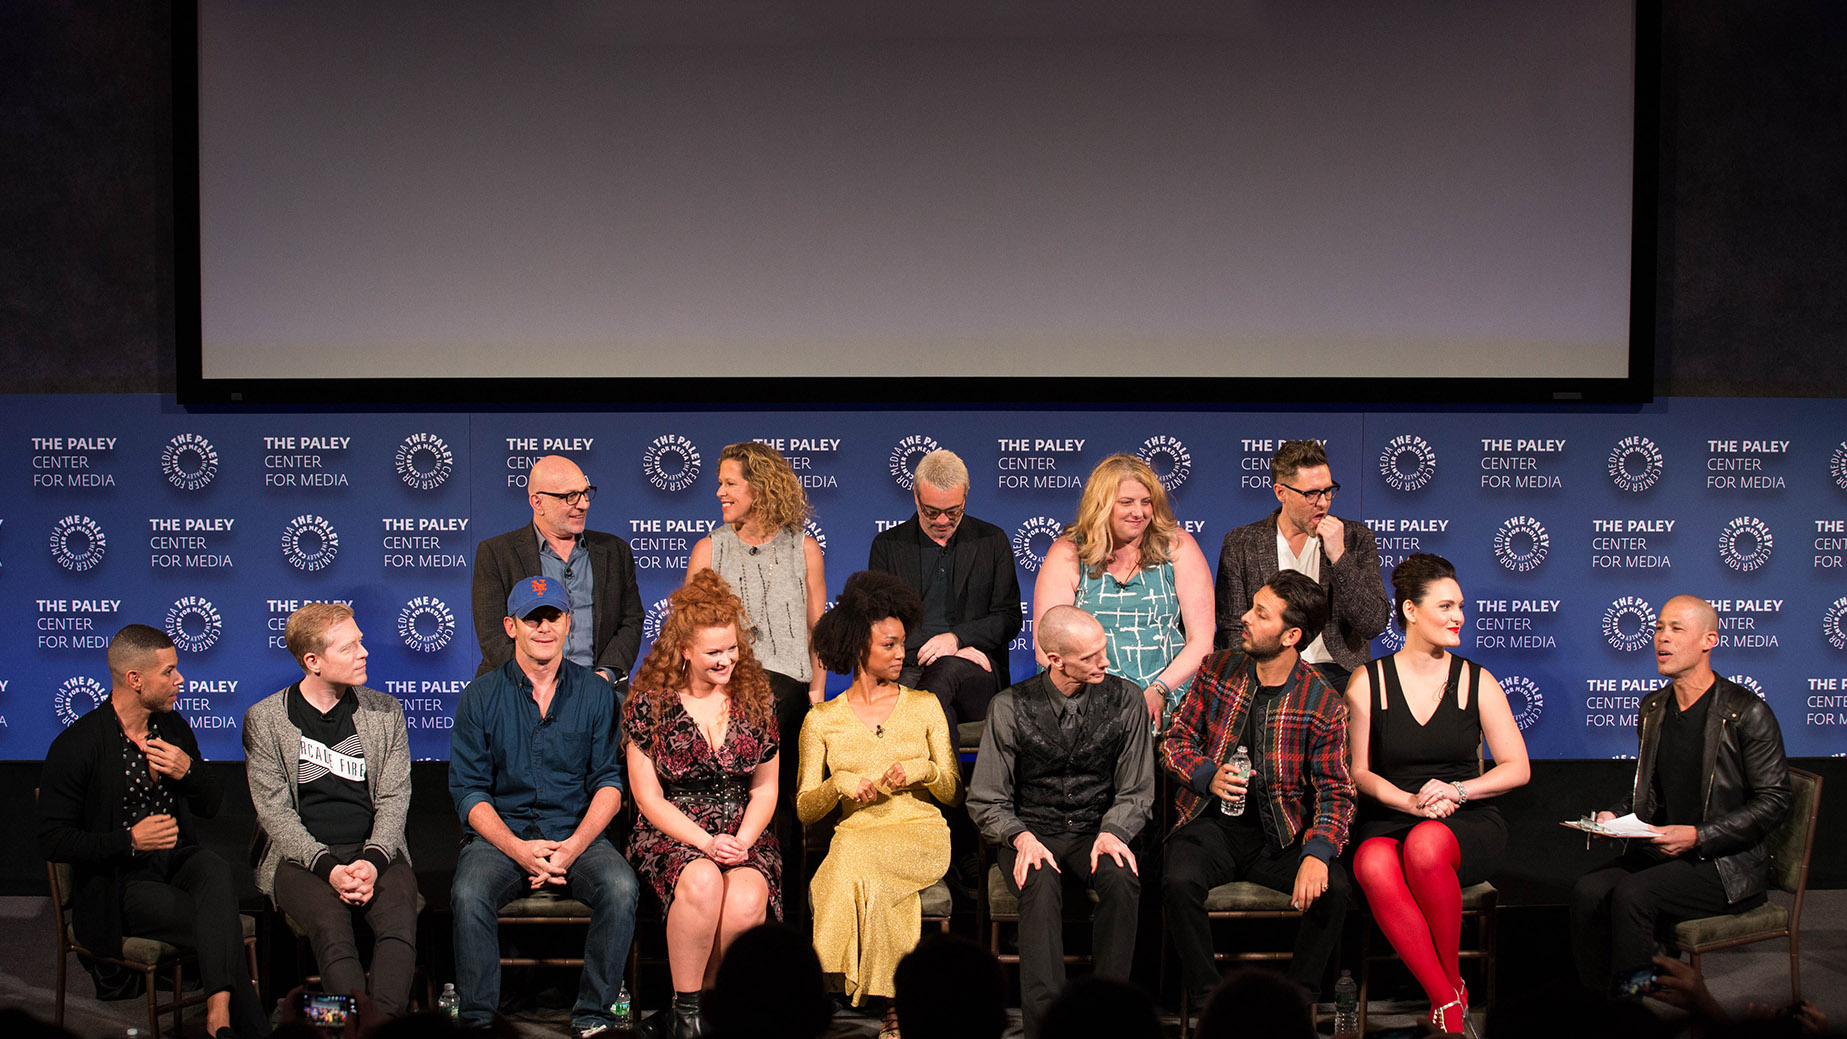 The cast and crew on-stage at PaleyFest